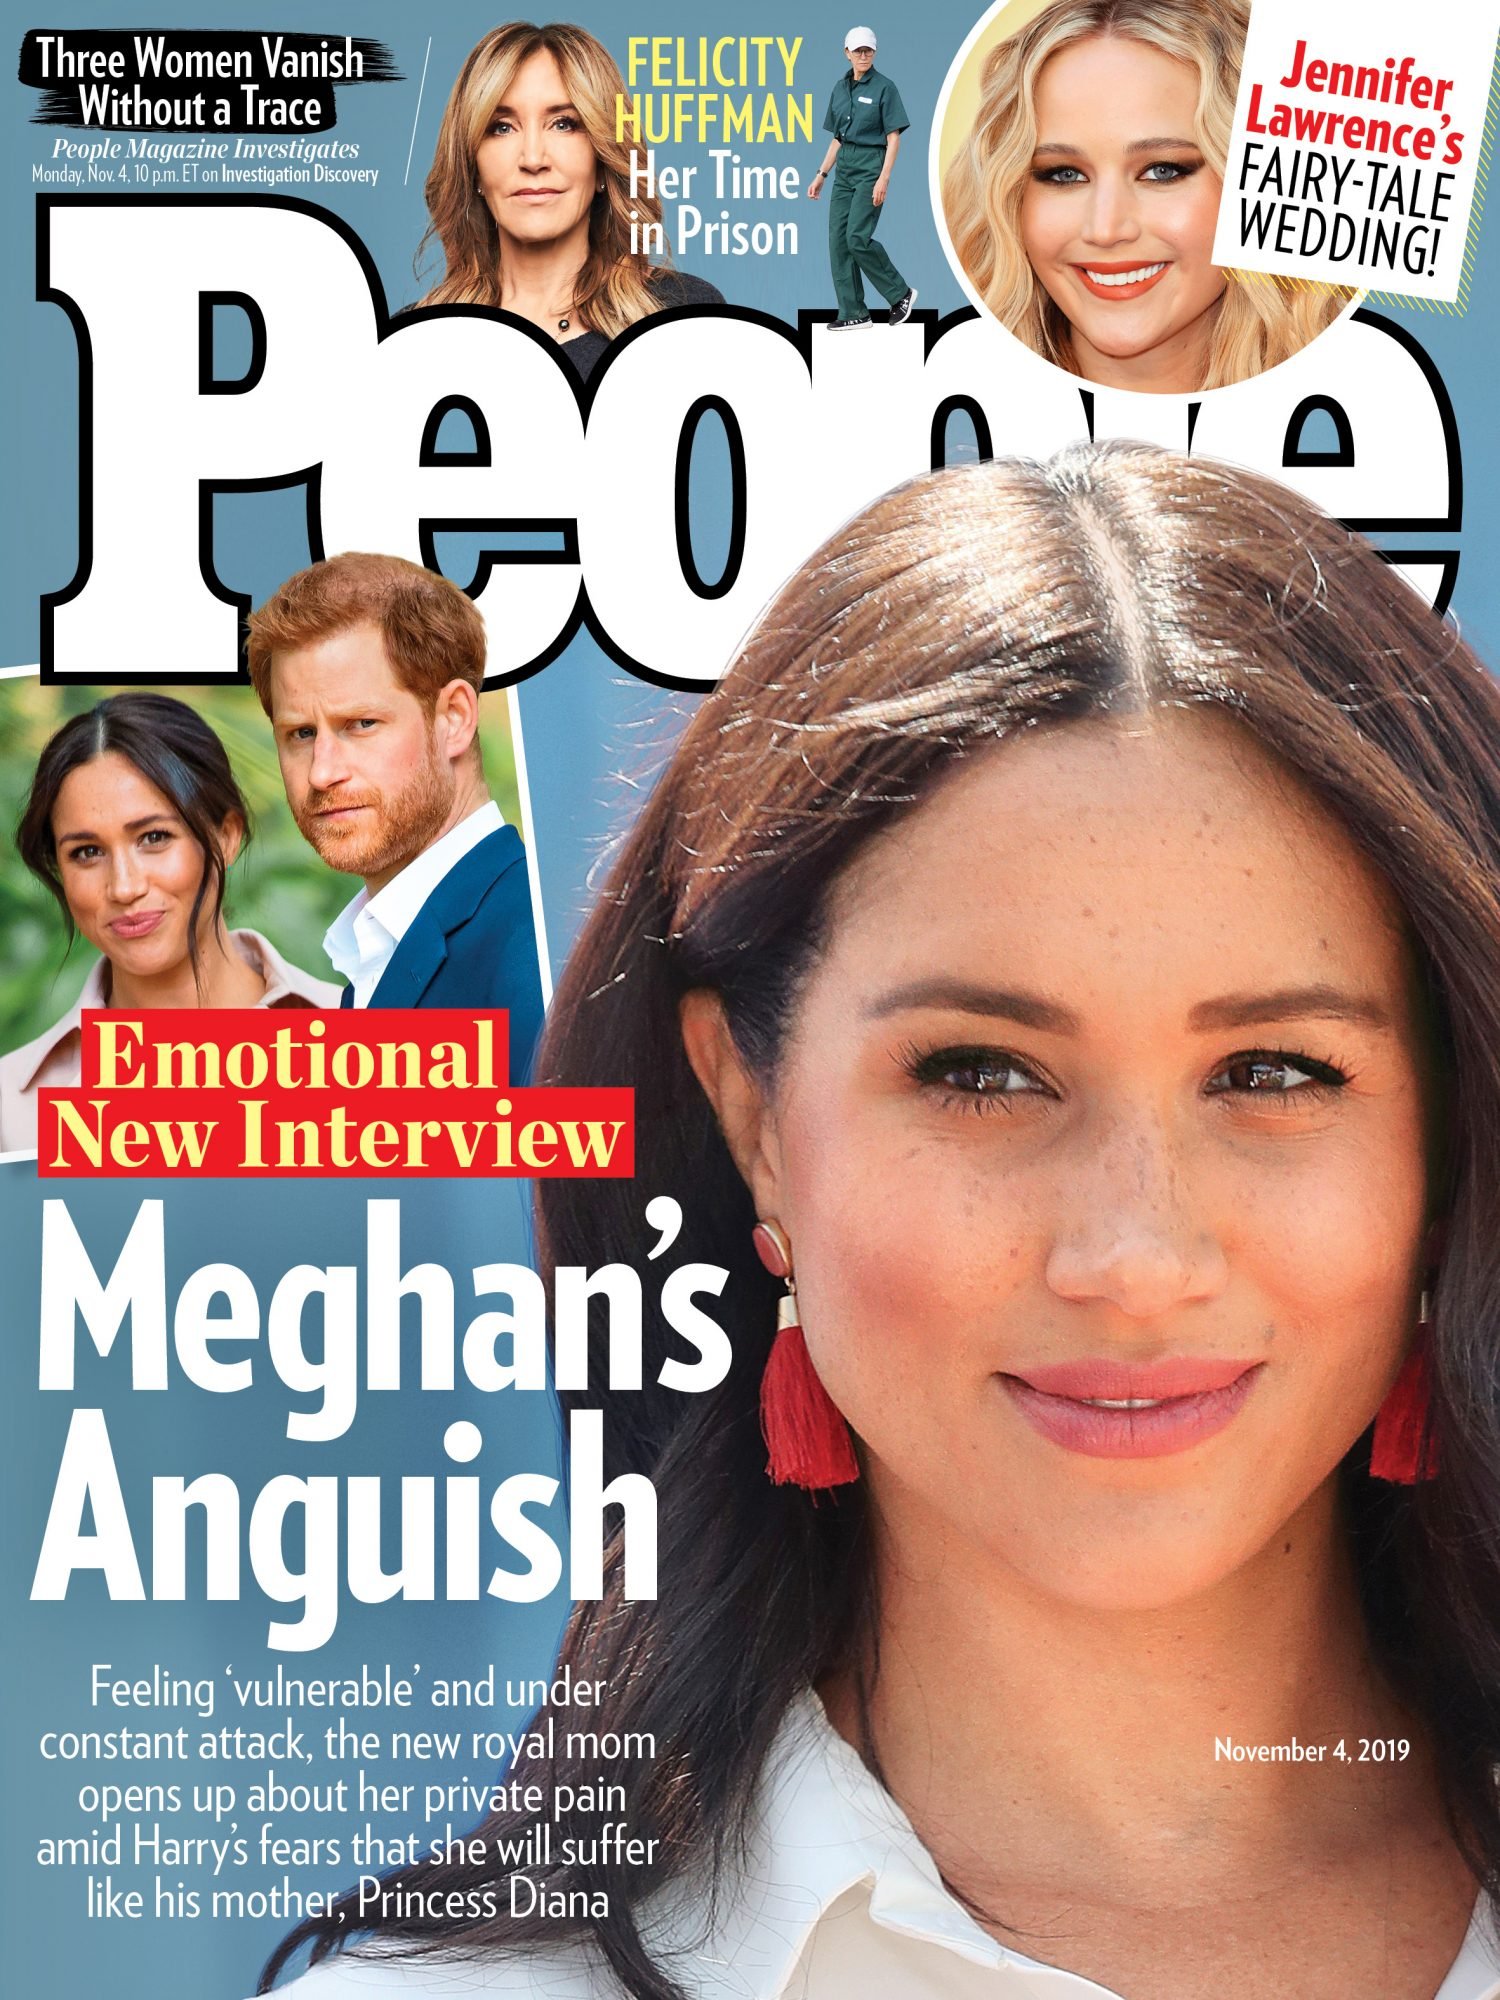 11/4 people magazine cover